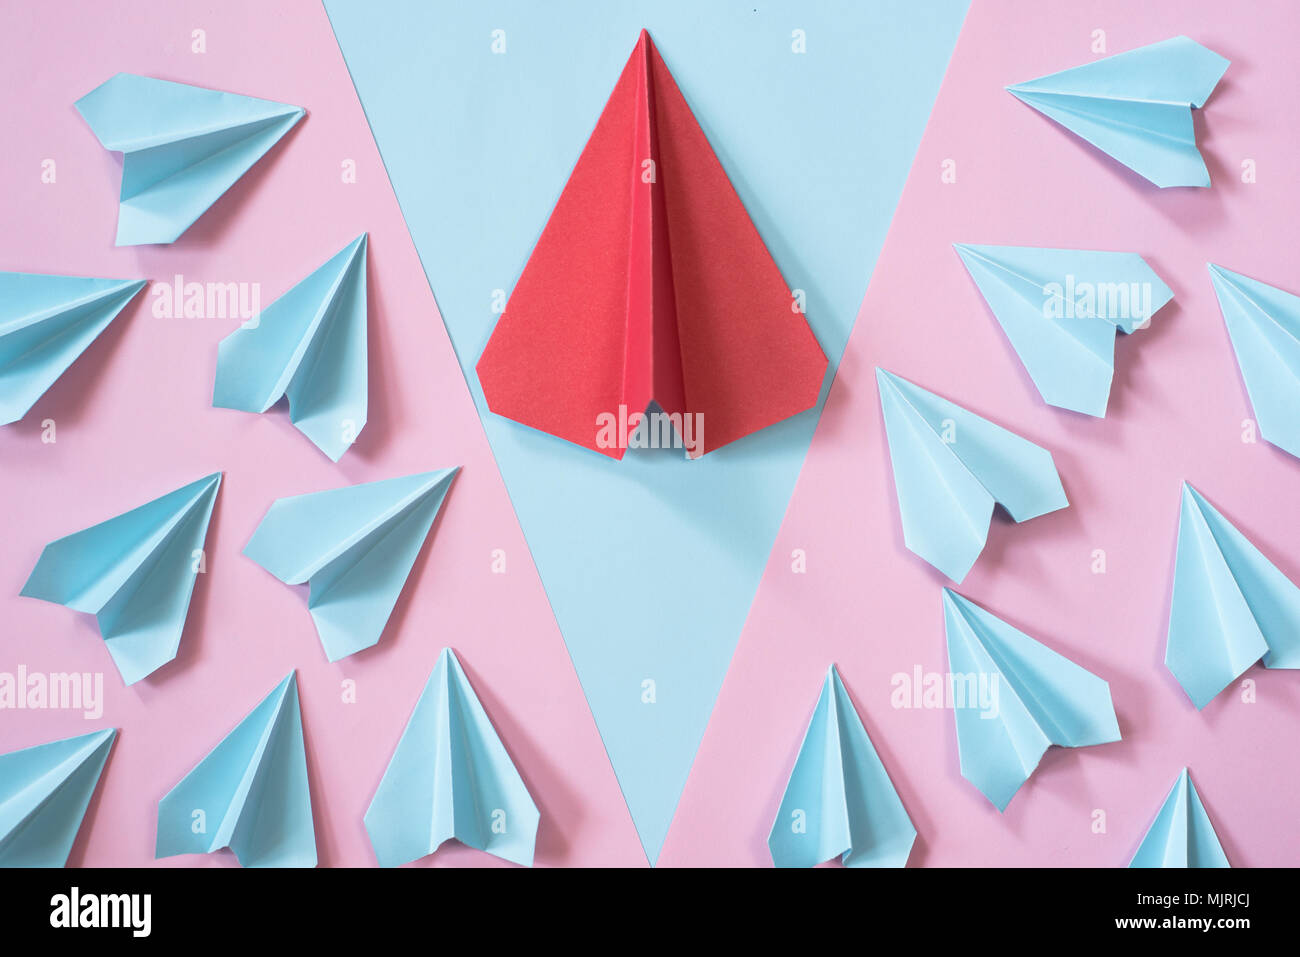 Avions en papier bleu entourant le plus grand avion de papier rouge et rose pastel sur fond de couleur bleue. concept de leadership Photo Stock